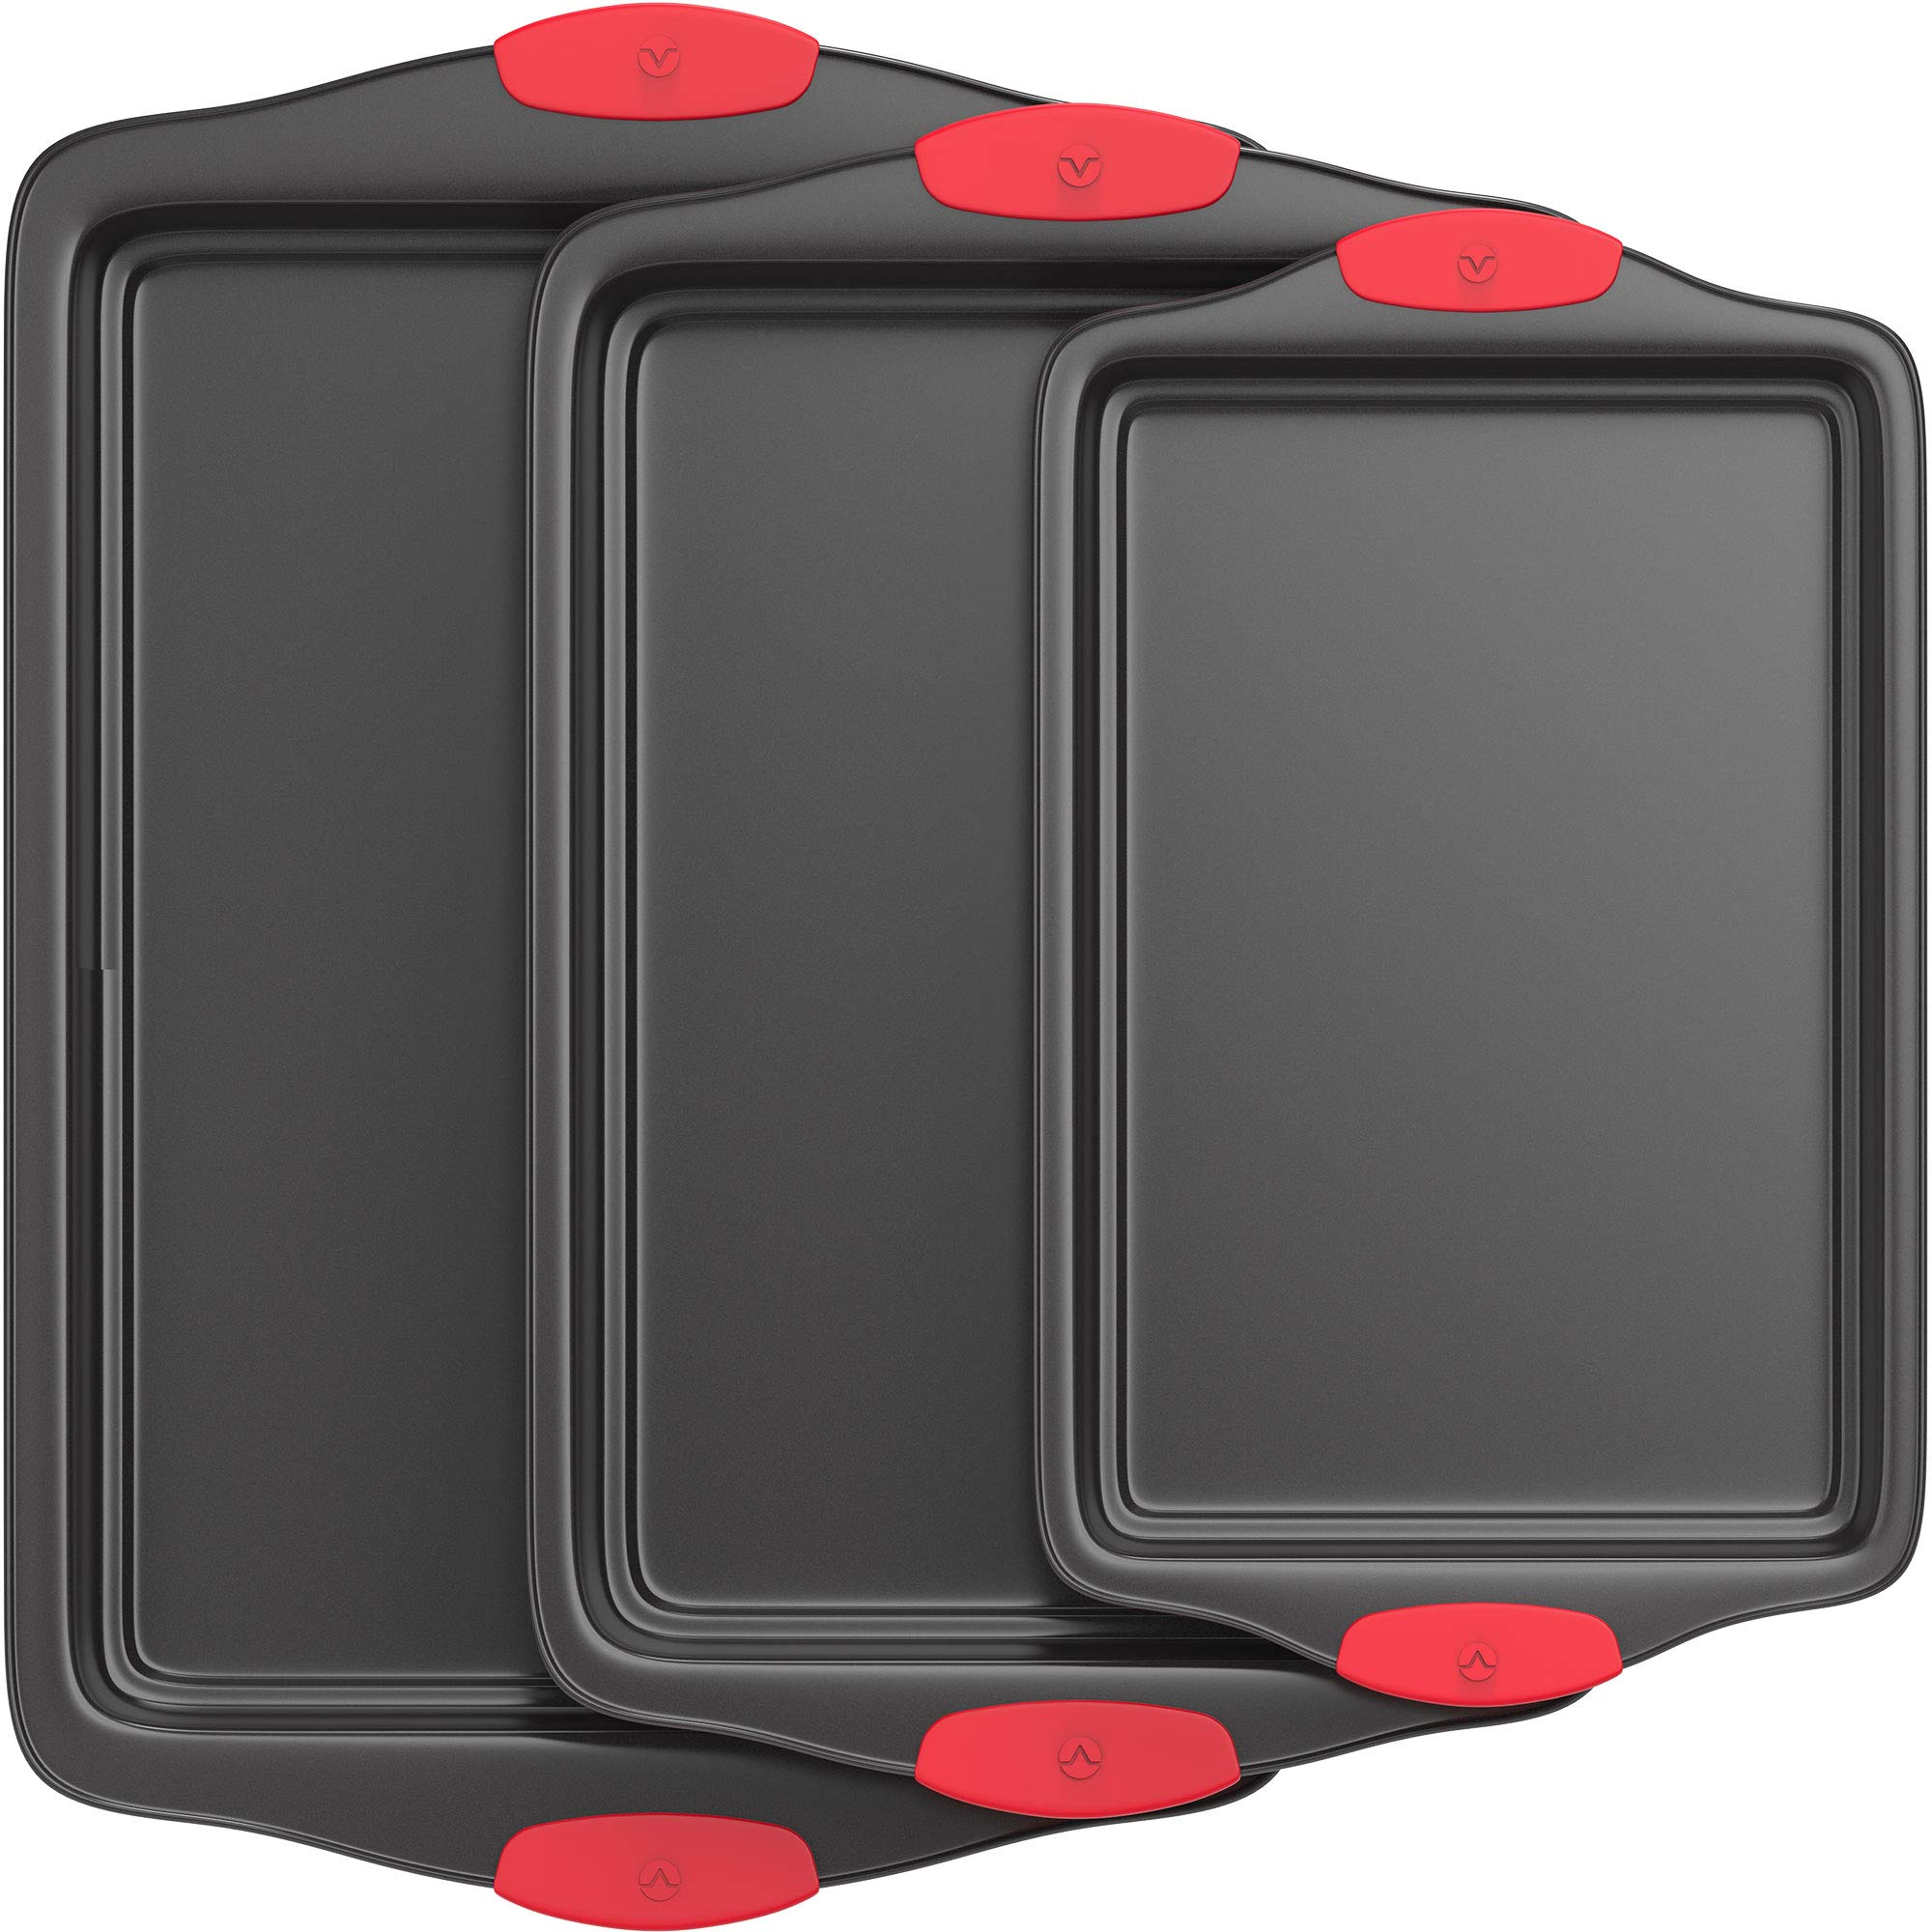 Vremi 3 Piece Nonstick Baking Sheets Set - Professional Non Stick Oven Tray Set for Baking - Non-Toxic Rimmed Carbon Steel Baking Pans Cookie Sheets with Wide BPA Free Red Silicone Handles by Vremi